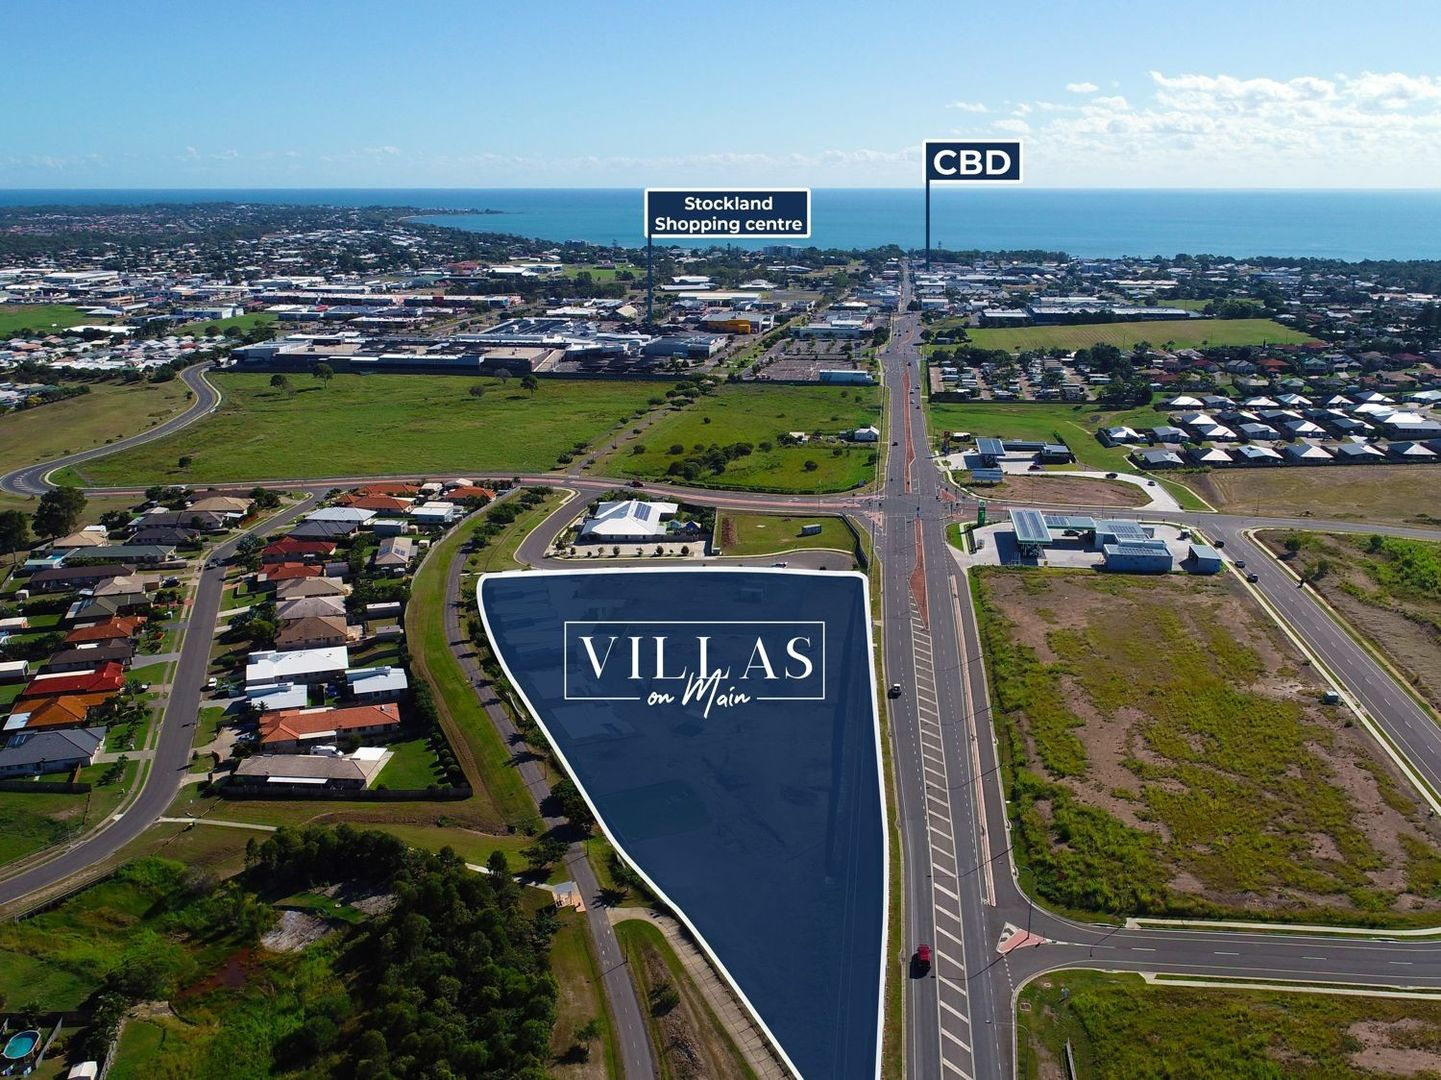 Unit 8 1 Links Court - Villas on Main, Urraween QLD 4655, Image 1